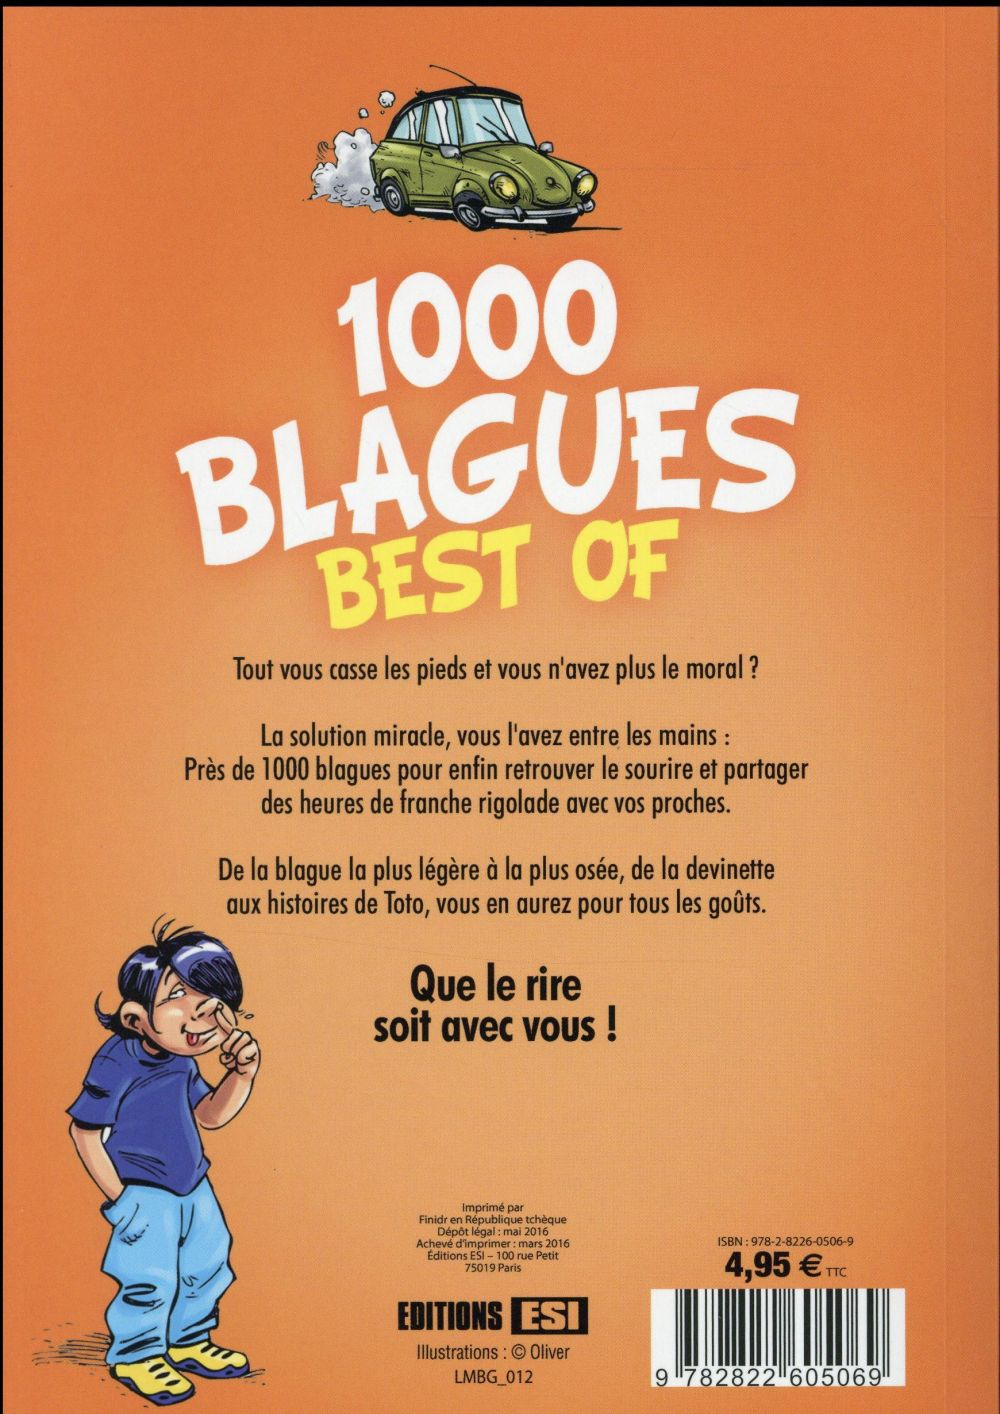 1000 blagues ; best of